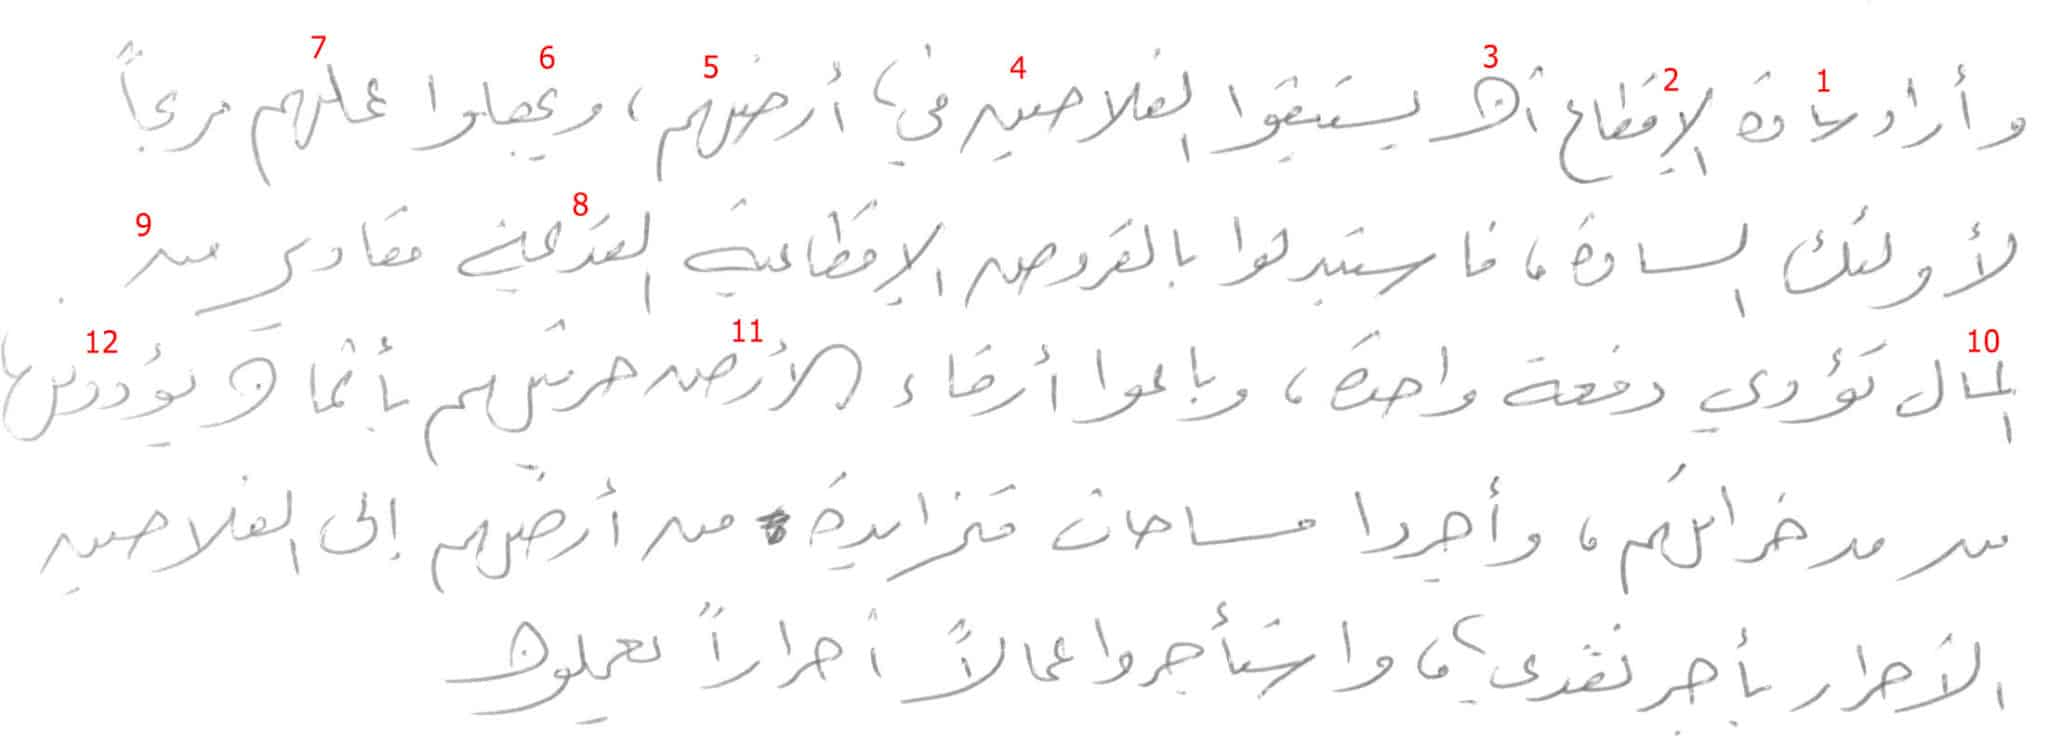 arabic-handwriting-05